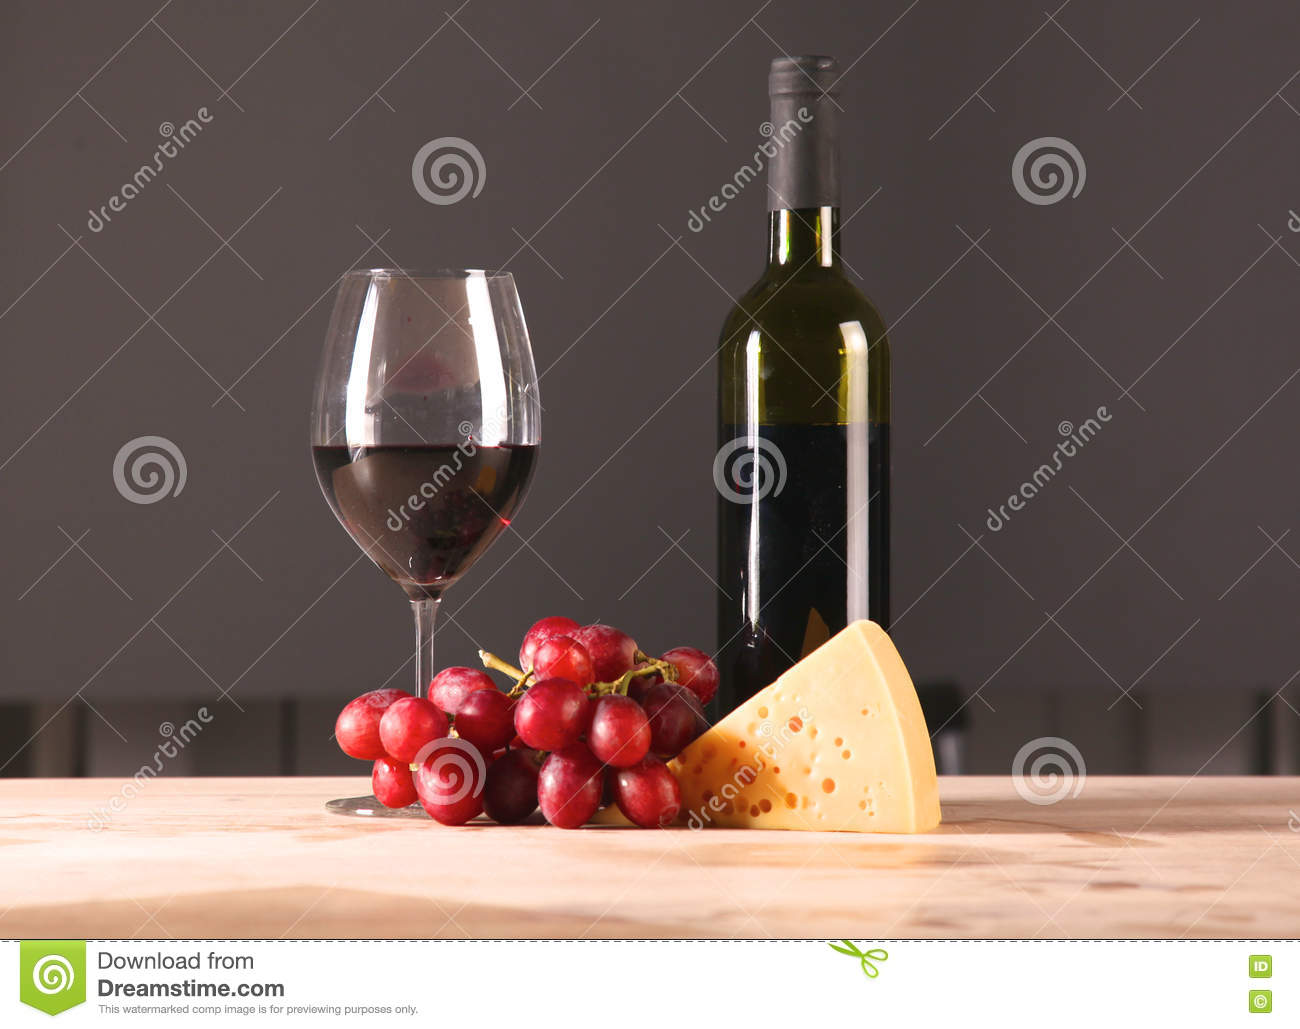 On the table a bottle of wine and a glass of